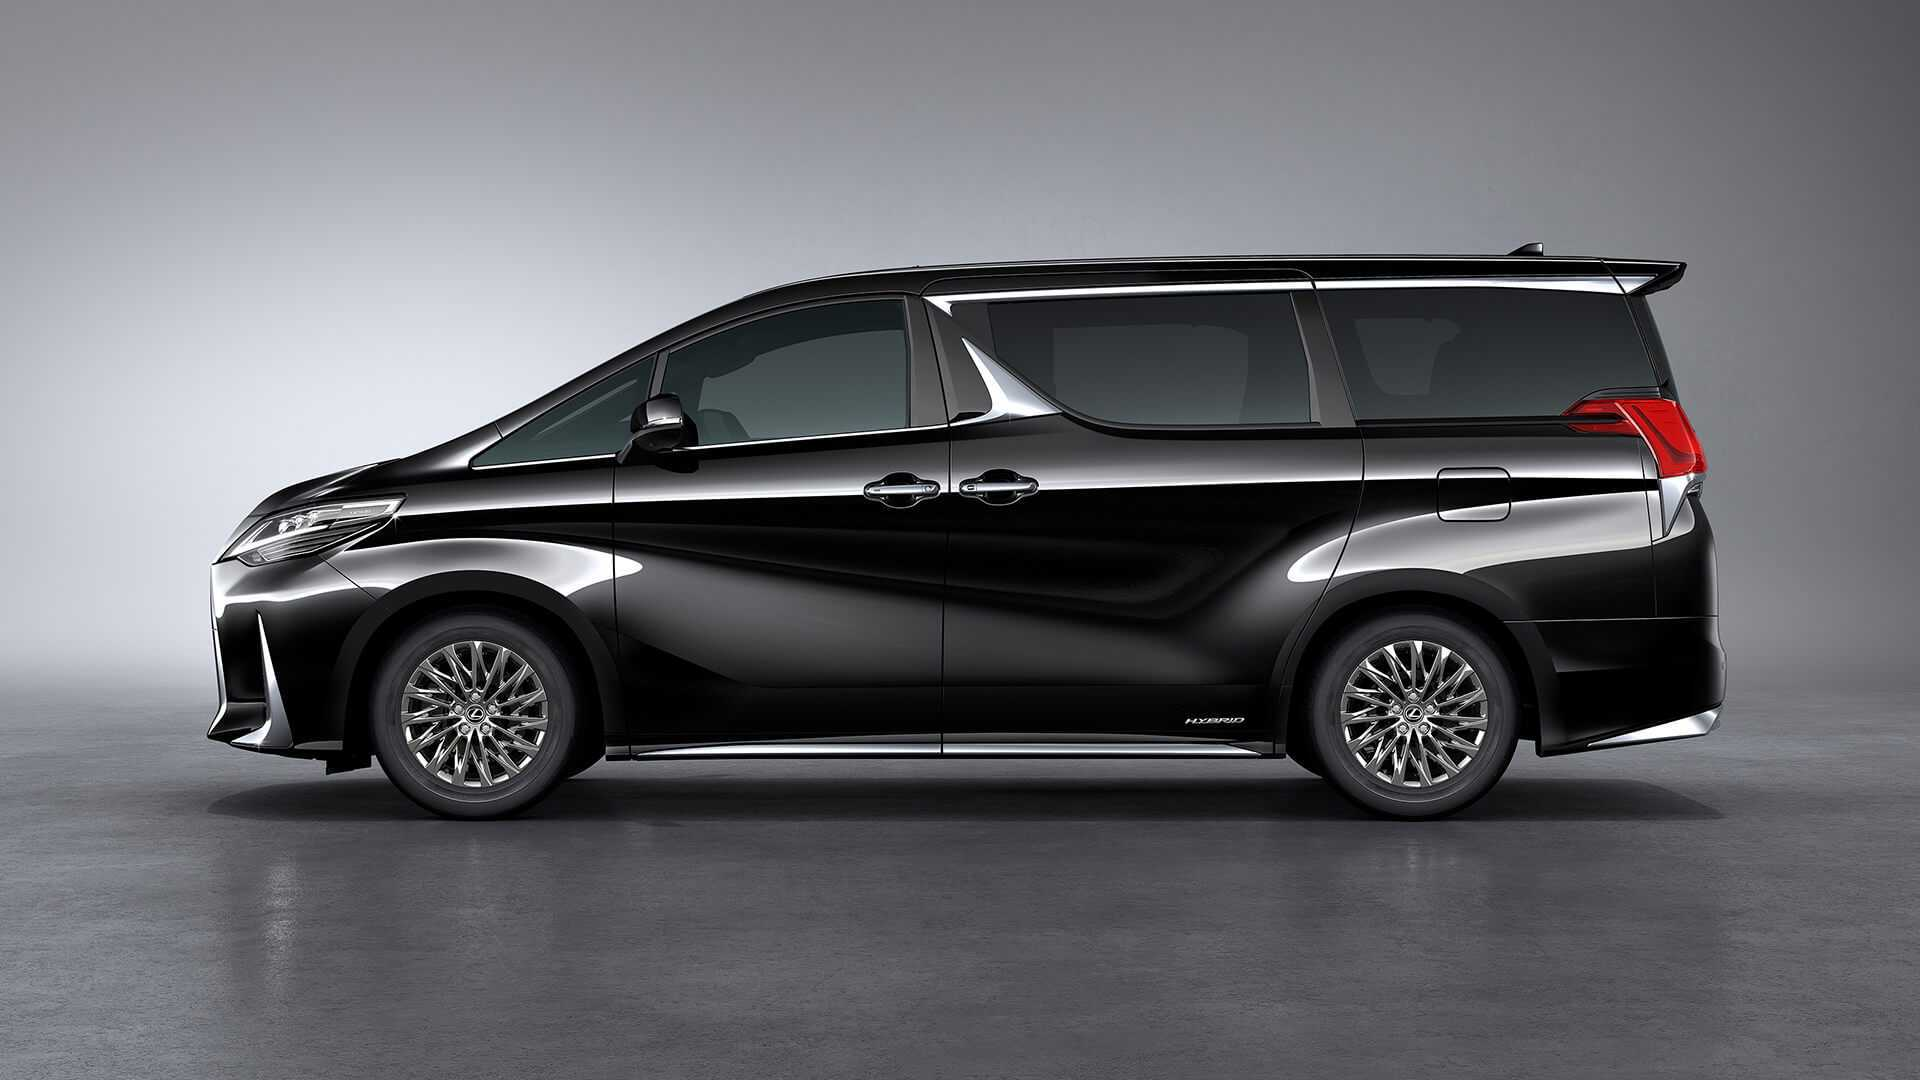 99 New Lexus Mpv 2020 Performance with Lexus Mpv 2020